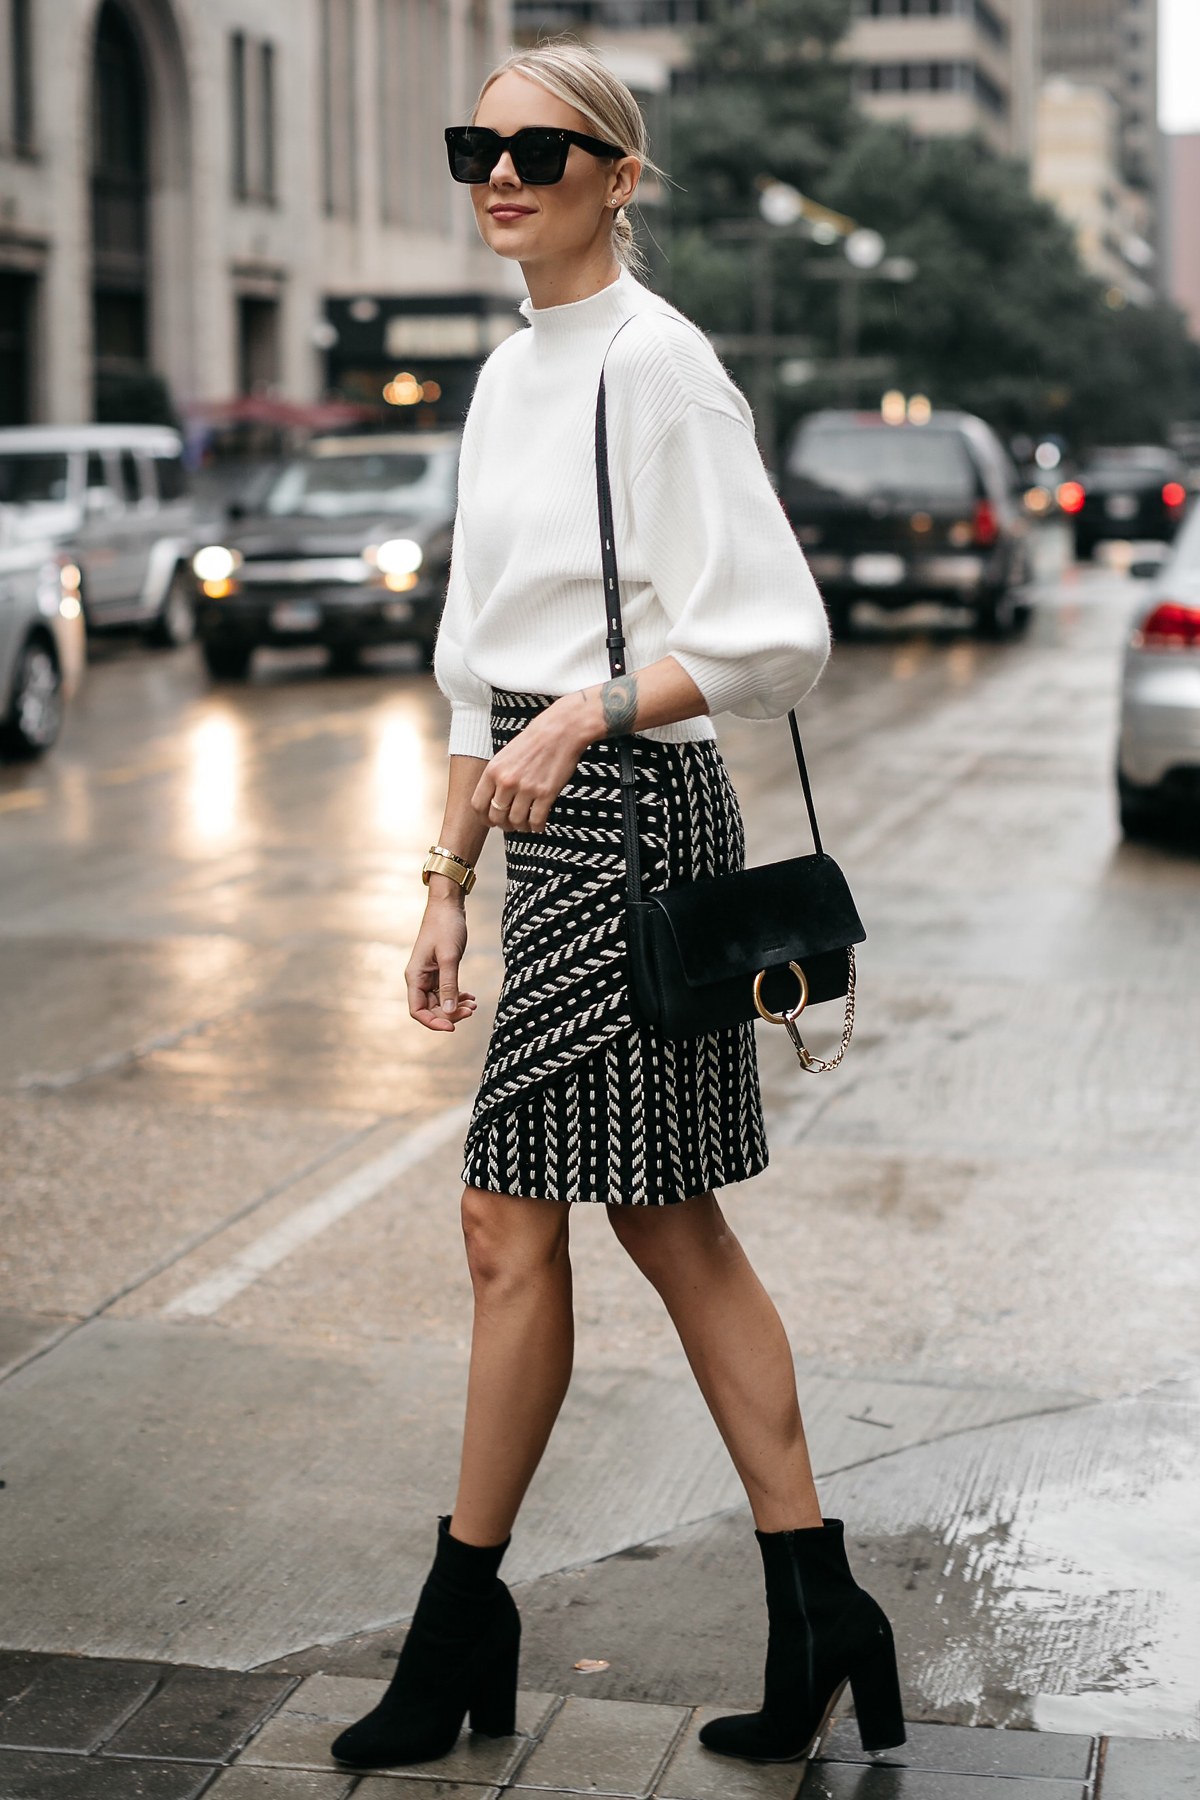 Fashion Jackson White Sweater Black and White Jacquard Skirt Black Ankle Booties Chloe Faye Handbag